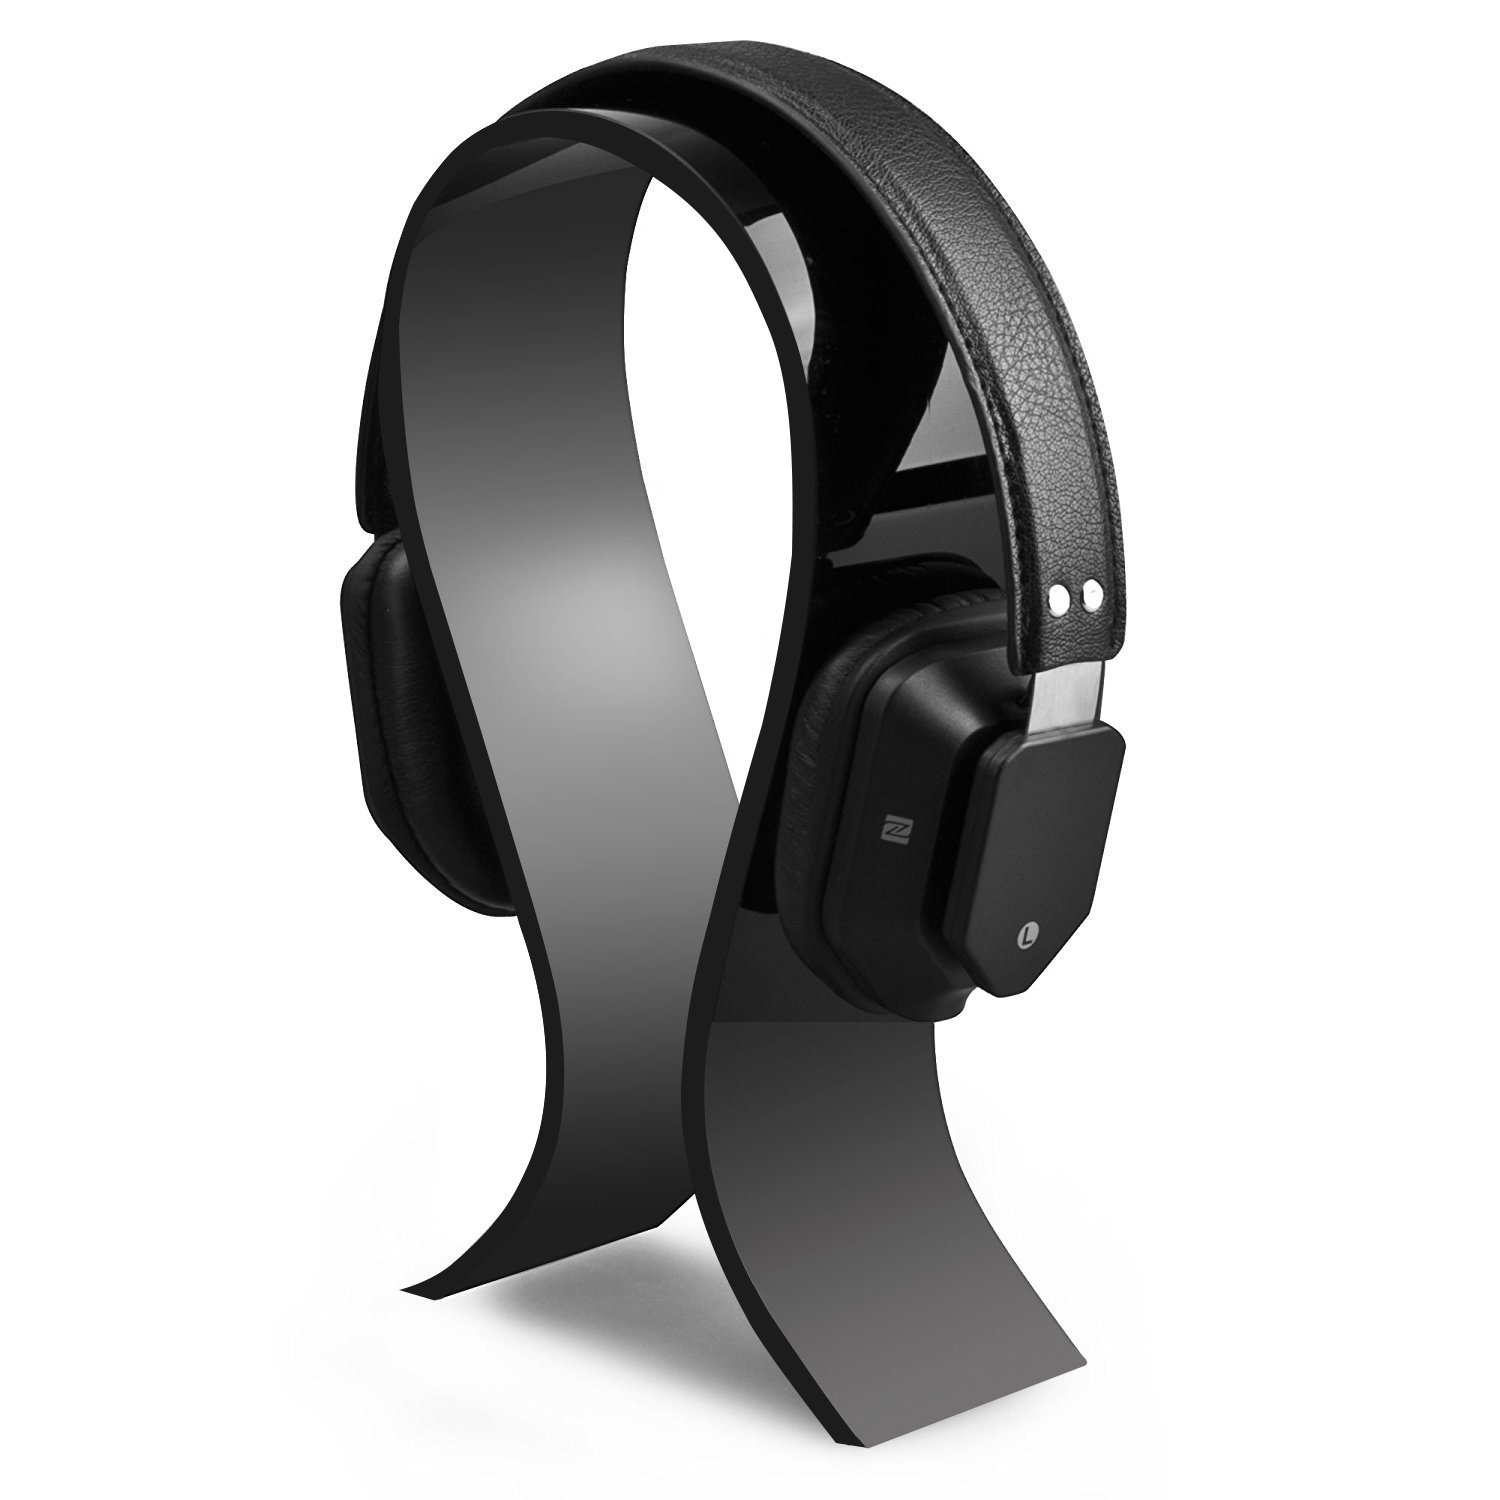 Stealth Gaming Headset Stand Review